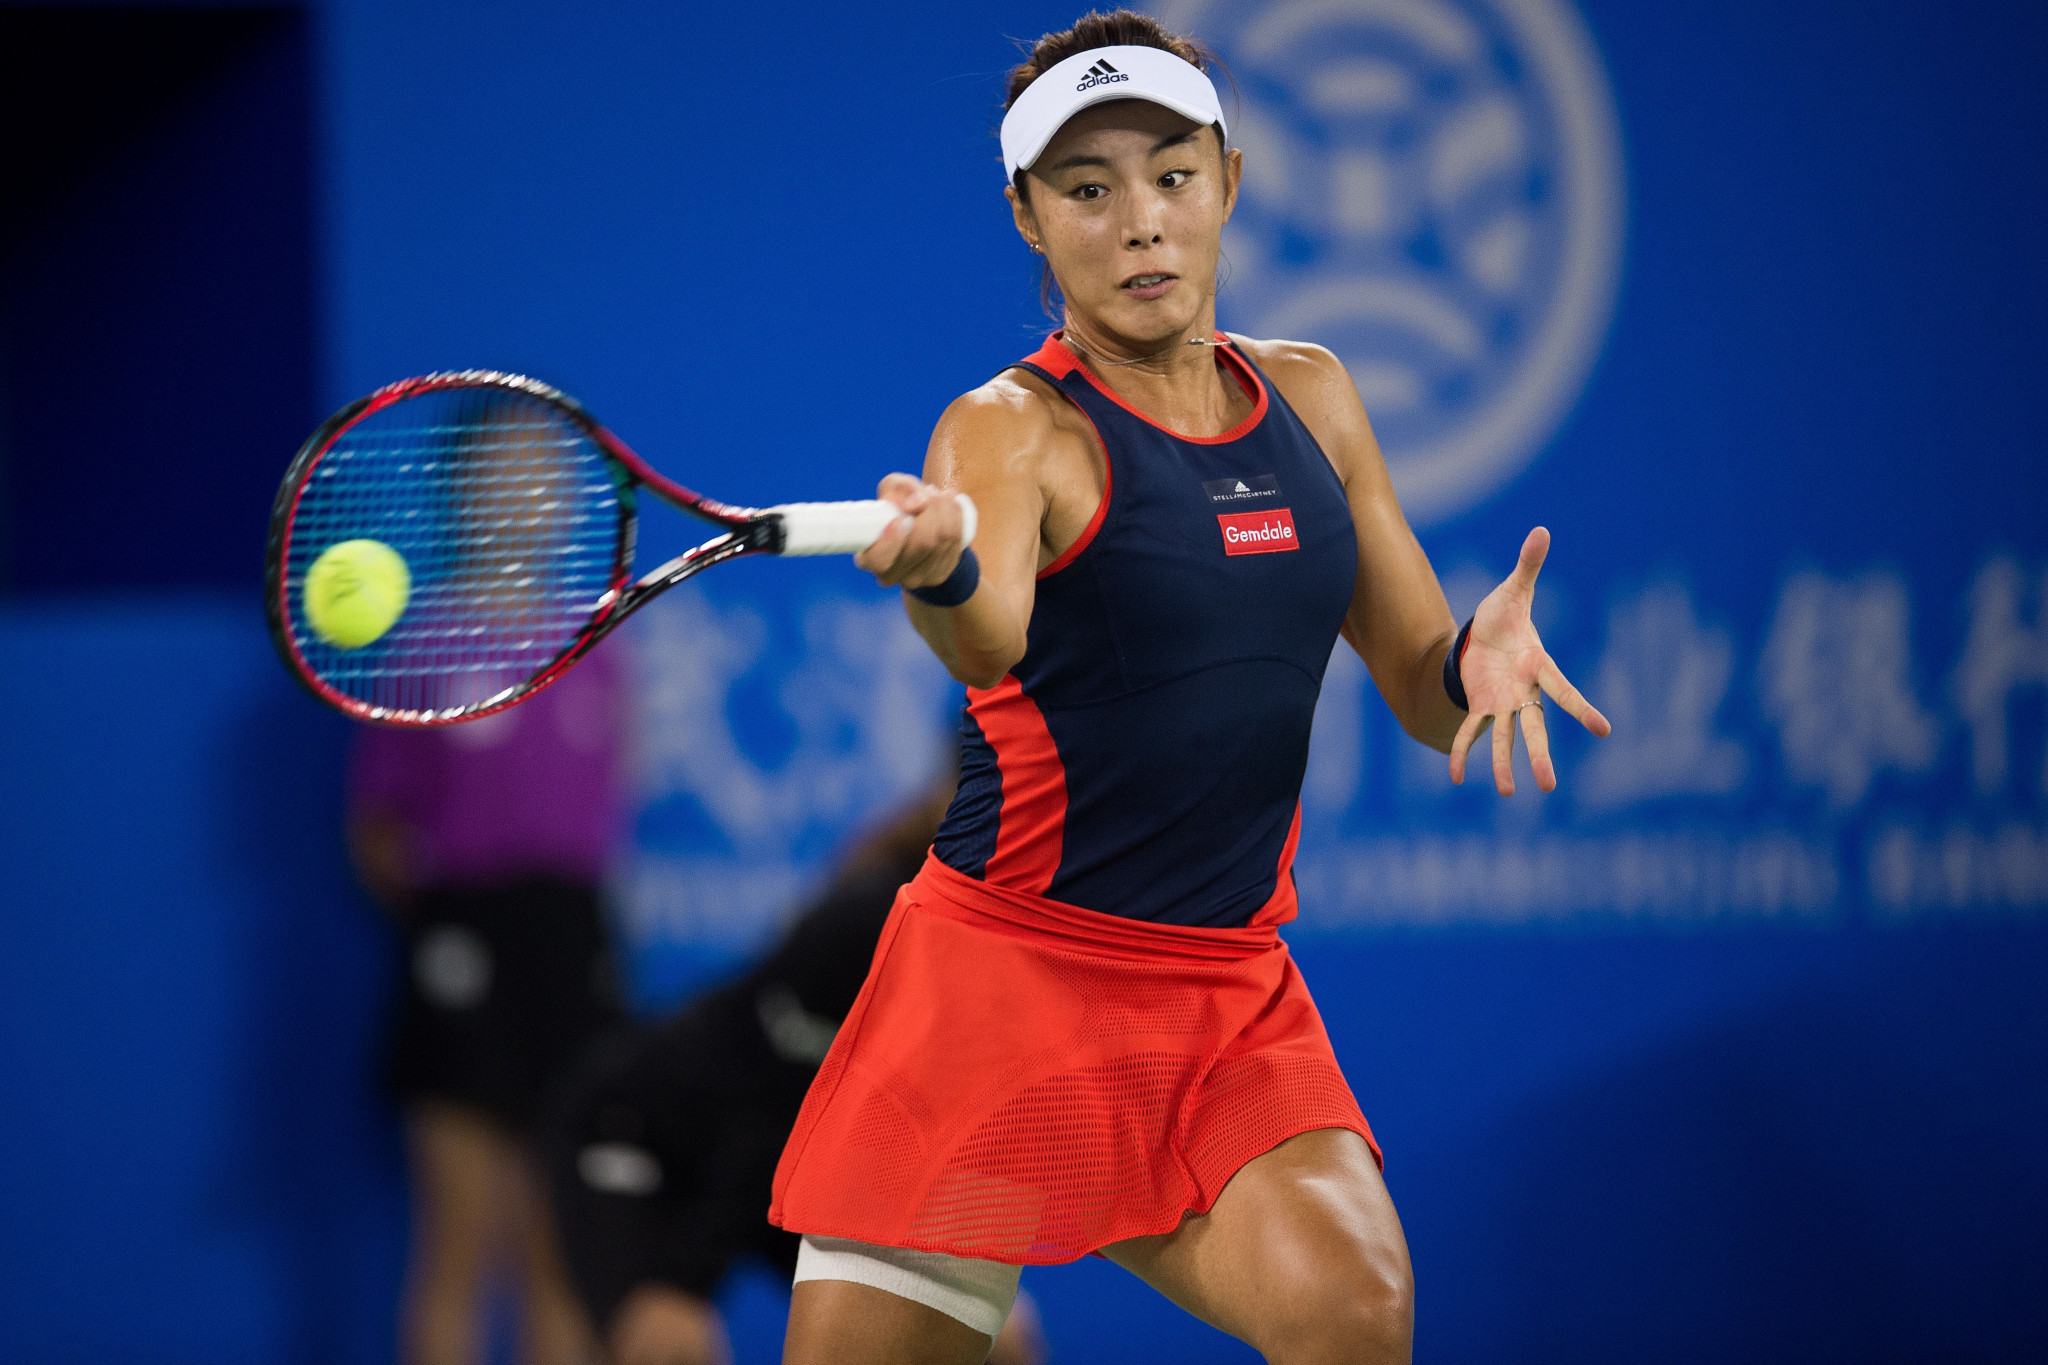 Wang Qiang of China beat Australian Daria Gavrilova to become the first Chinese woman to reach the quarter-finals of the Wuhan Open ©Getty Images